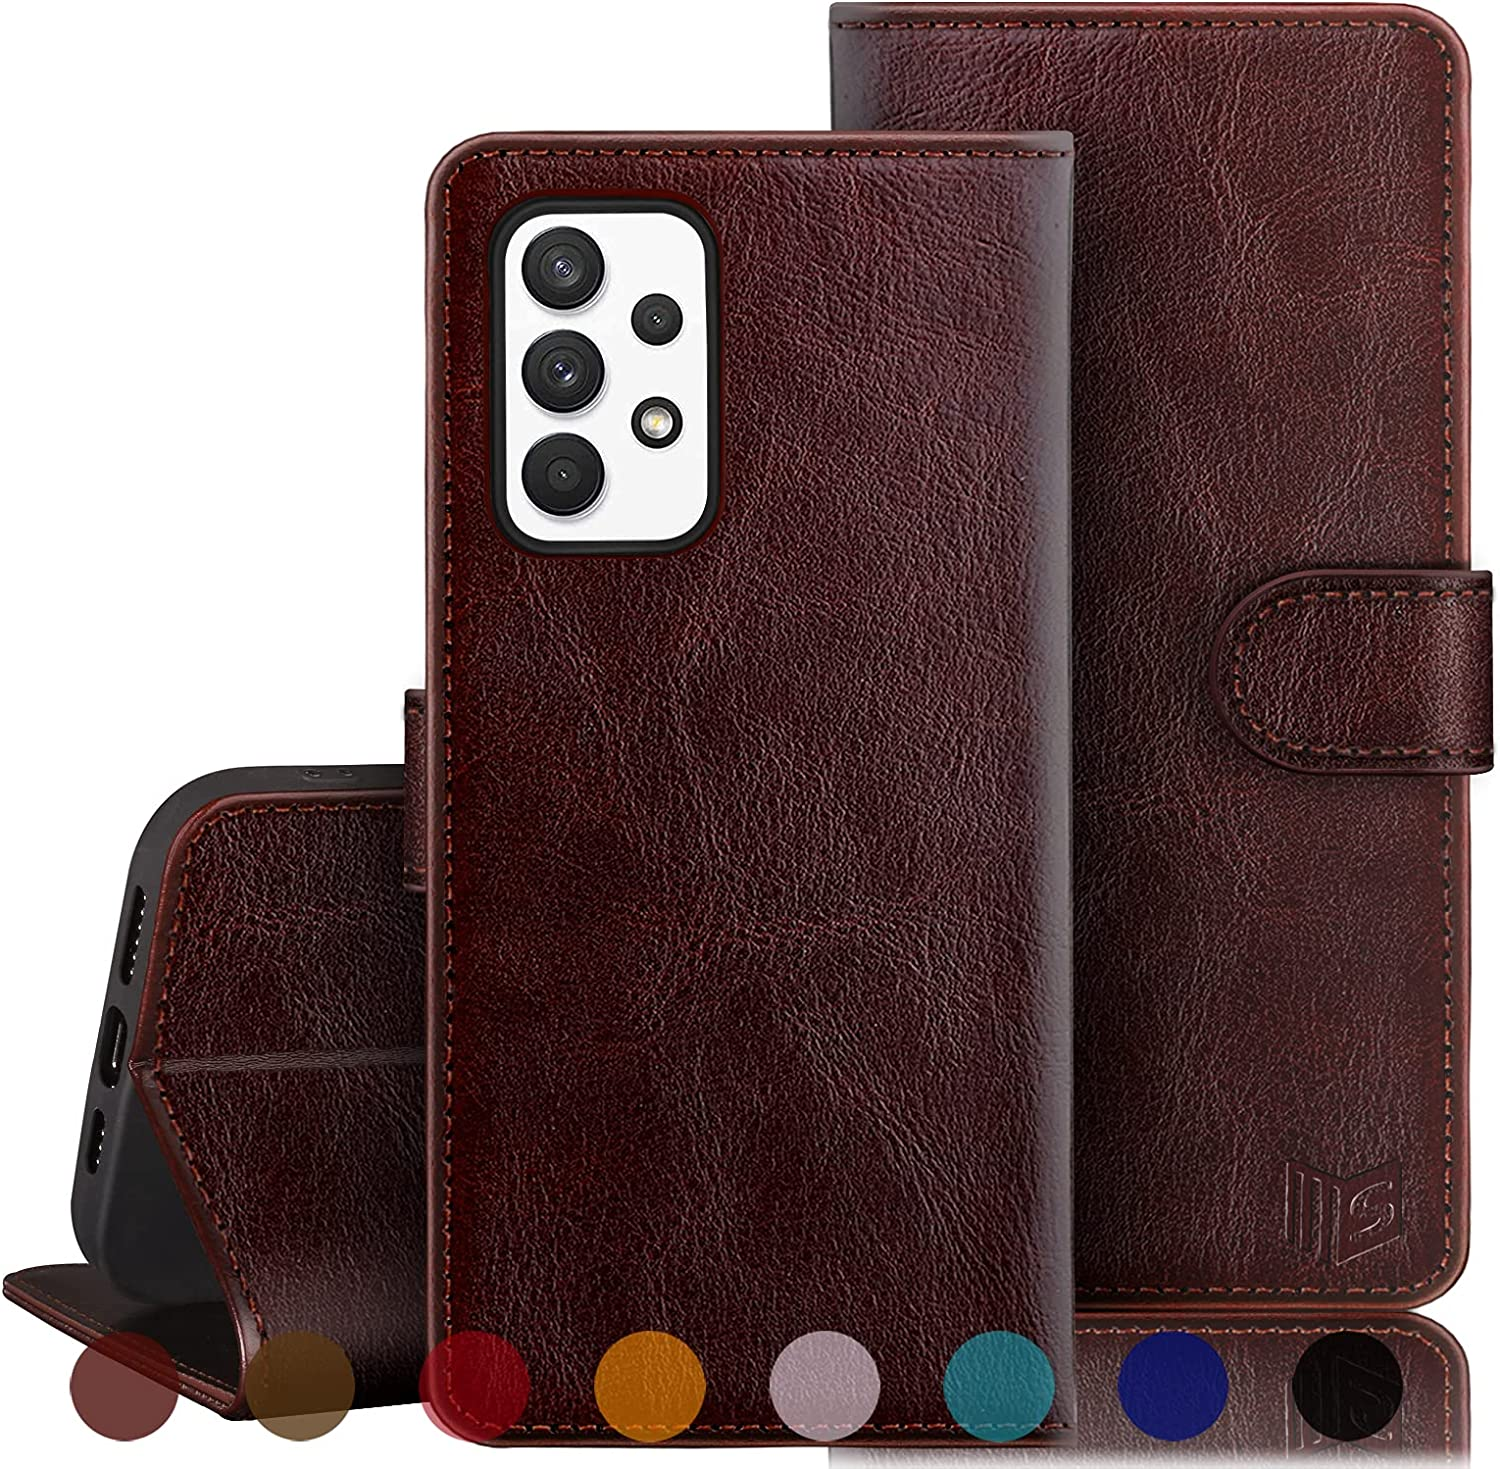 SUANPOT for Samsung Galaxy A32 Wallet case RFID Blocking Credit Card Holder, Flip Book Phone case Folio Cover for Women Men for Samsung A32 case Wallet Cellphone PU Leather case Brown